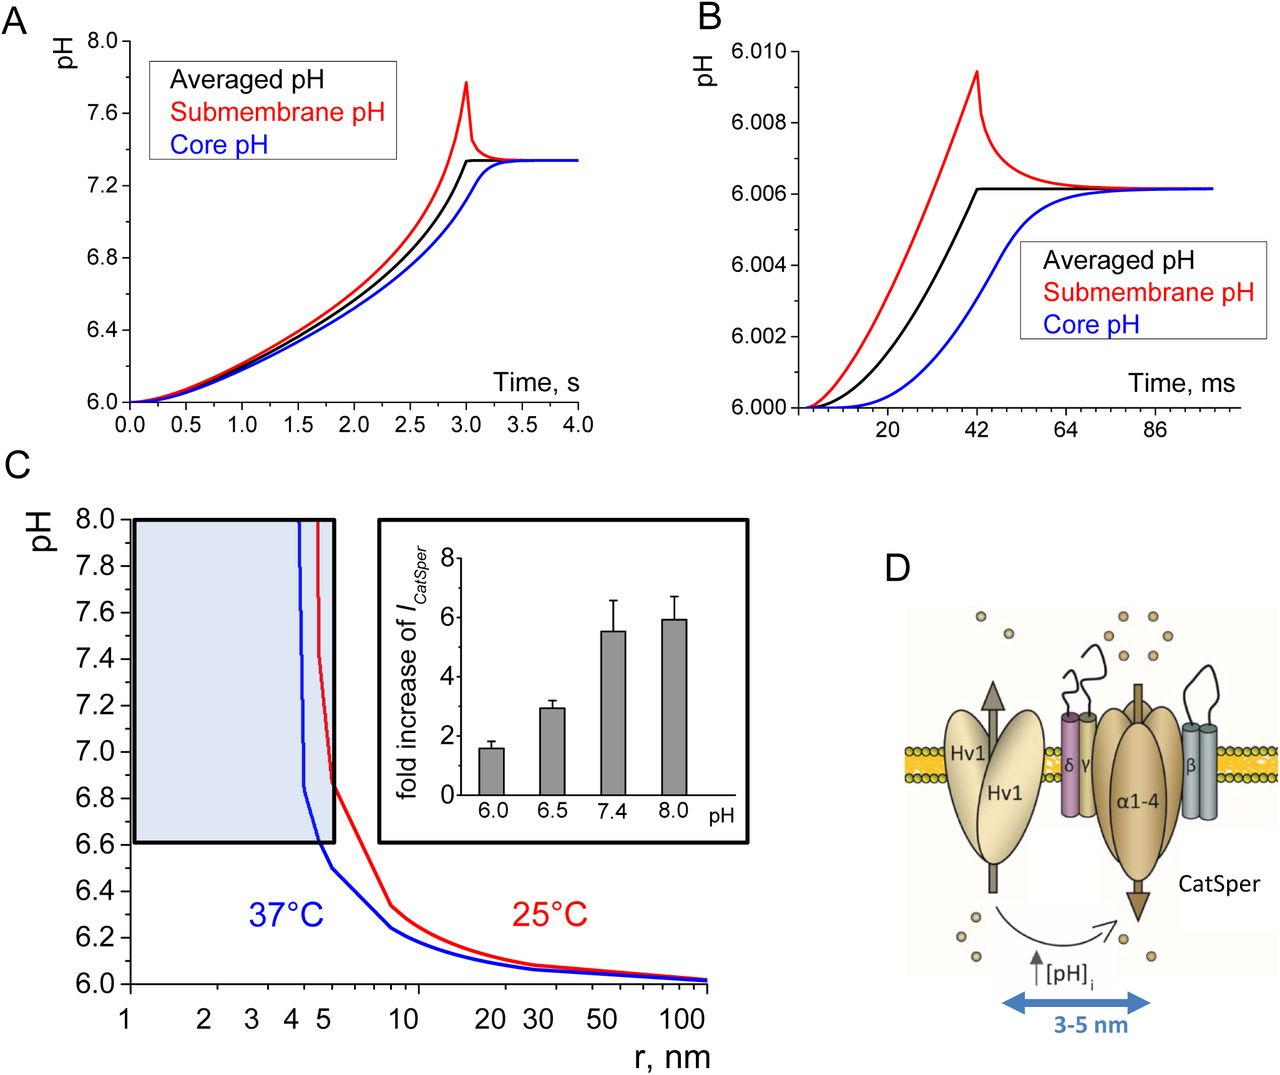 Asymmetrically Positioned Flagellar Control Units Regulate